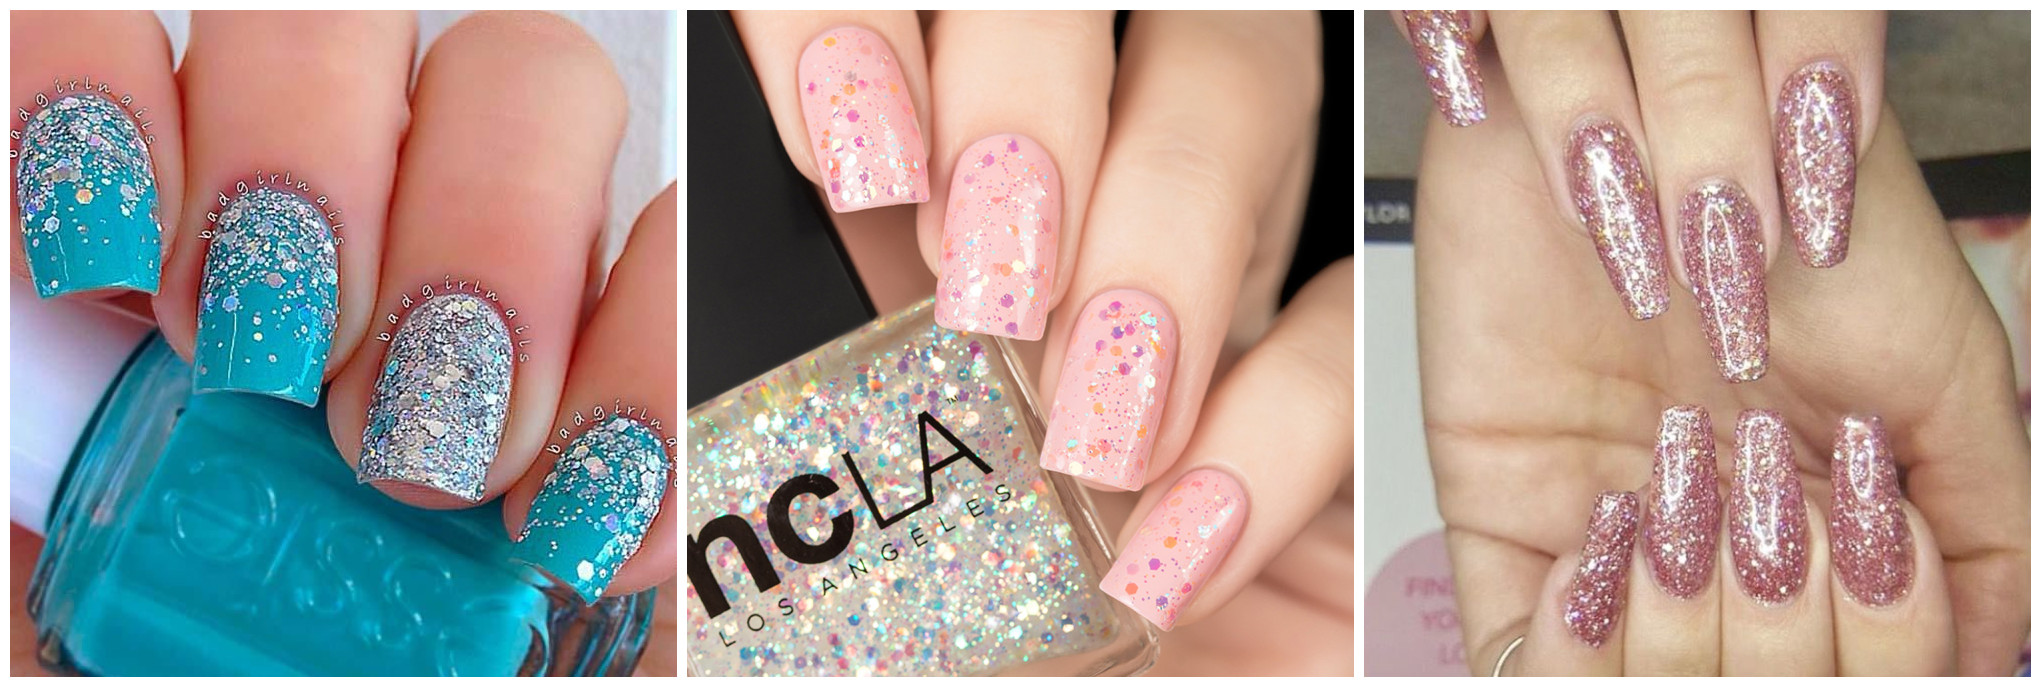 glitter for nails